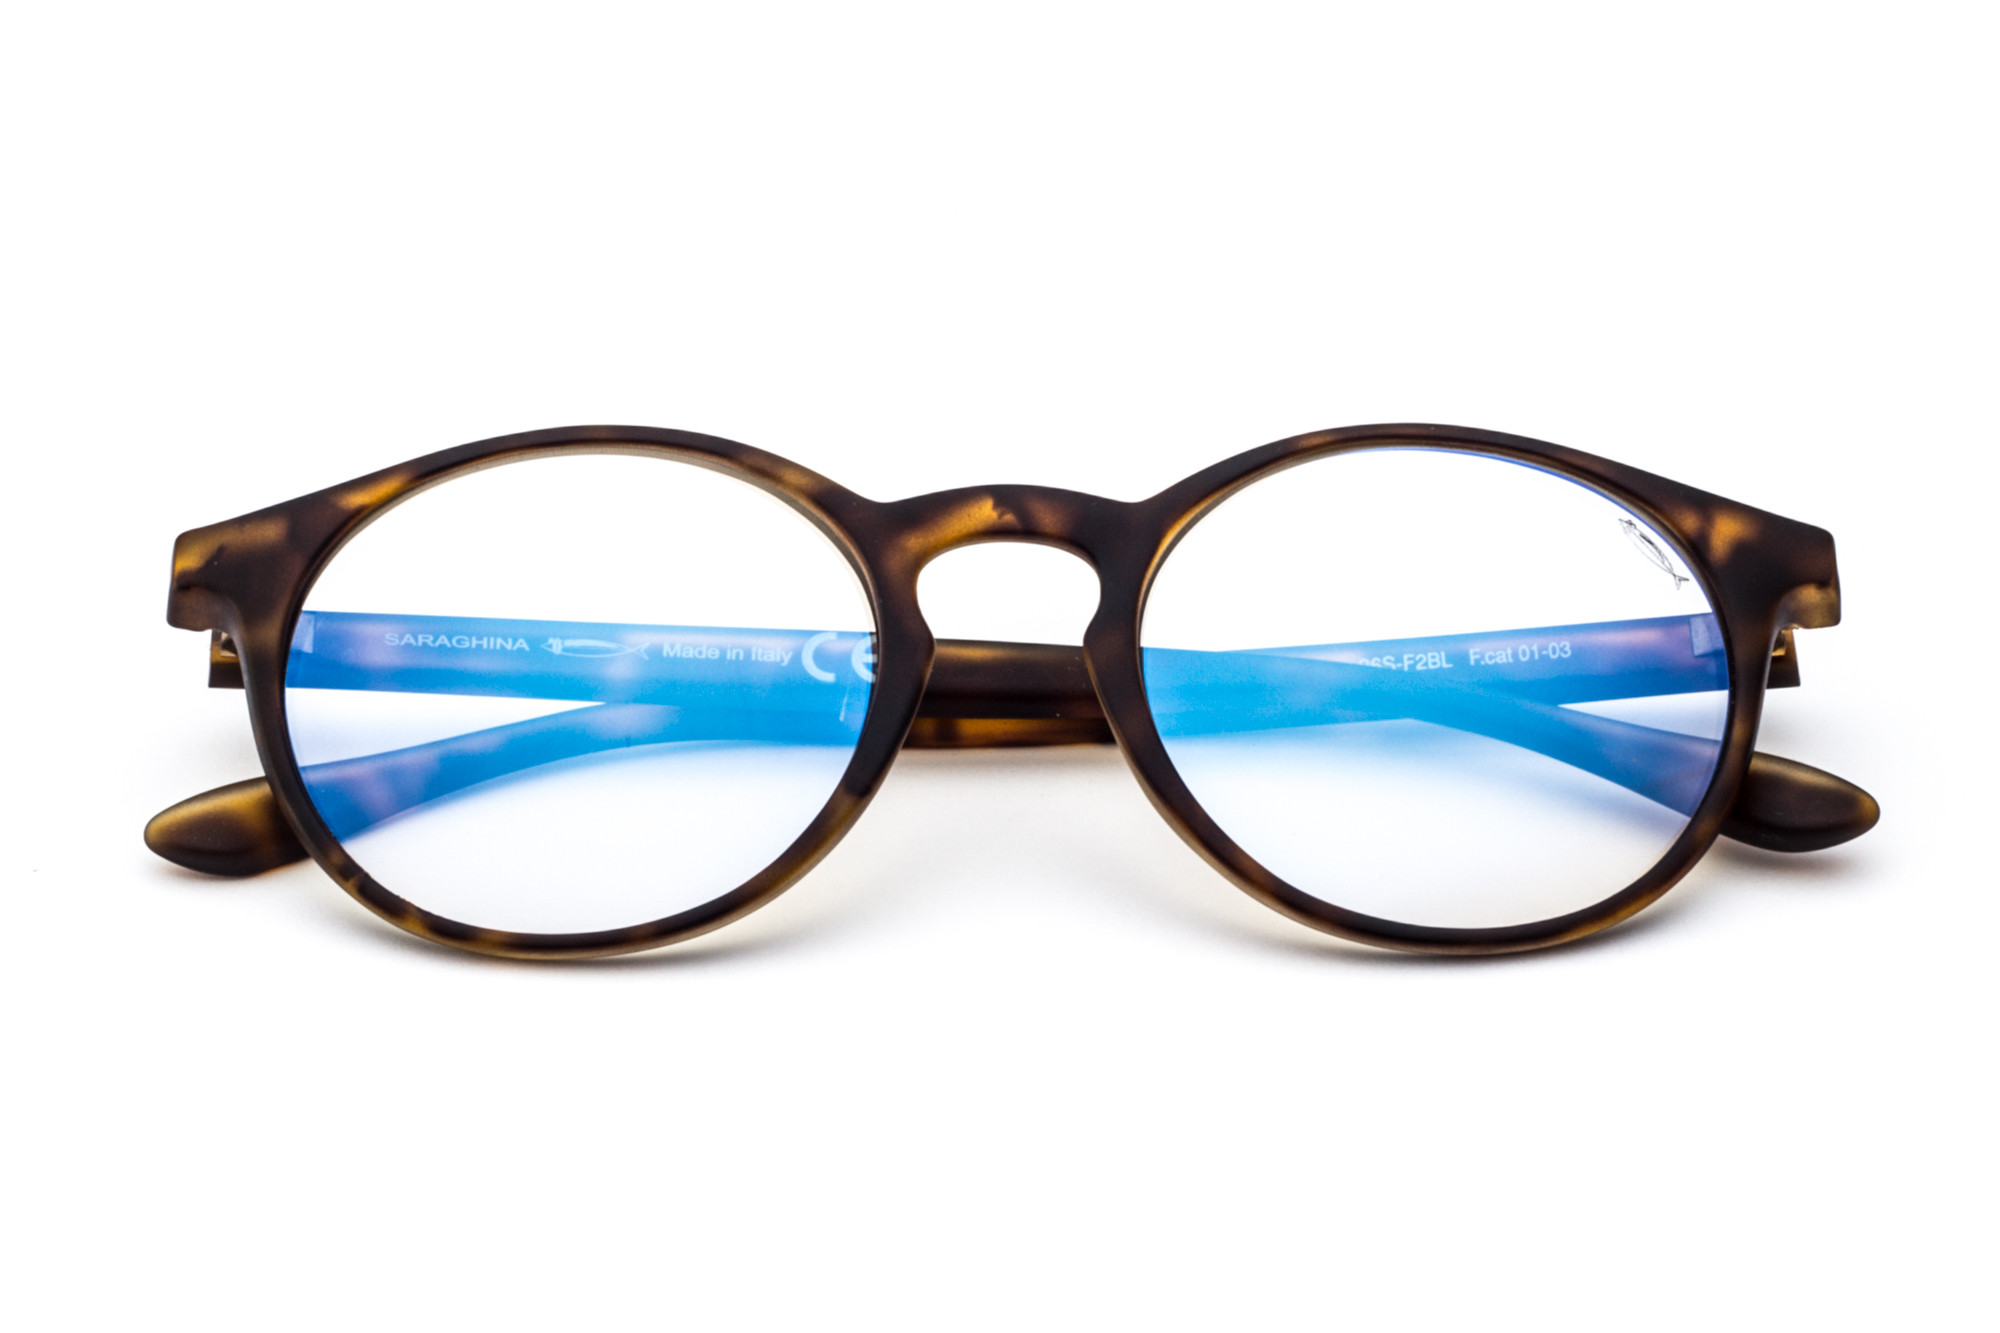 Tortoise Shell - Photochromic Flashed Blue Lens